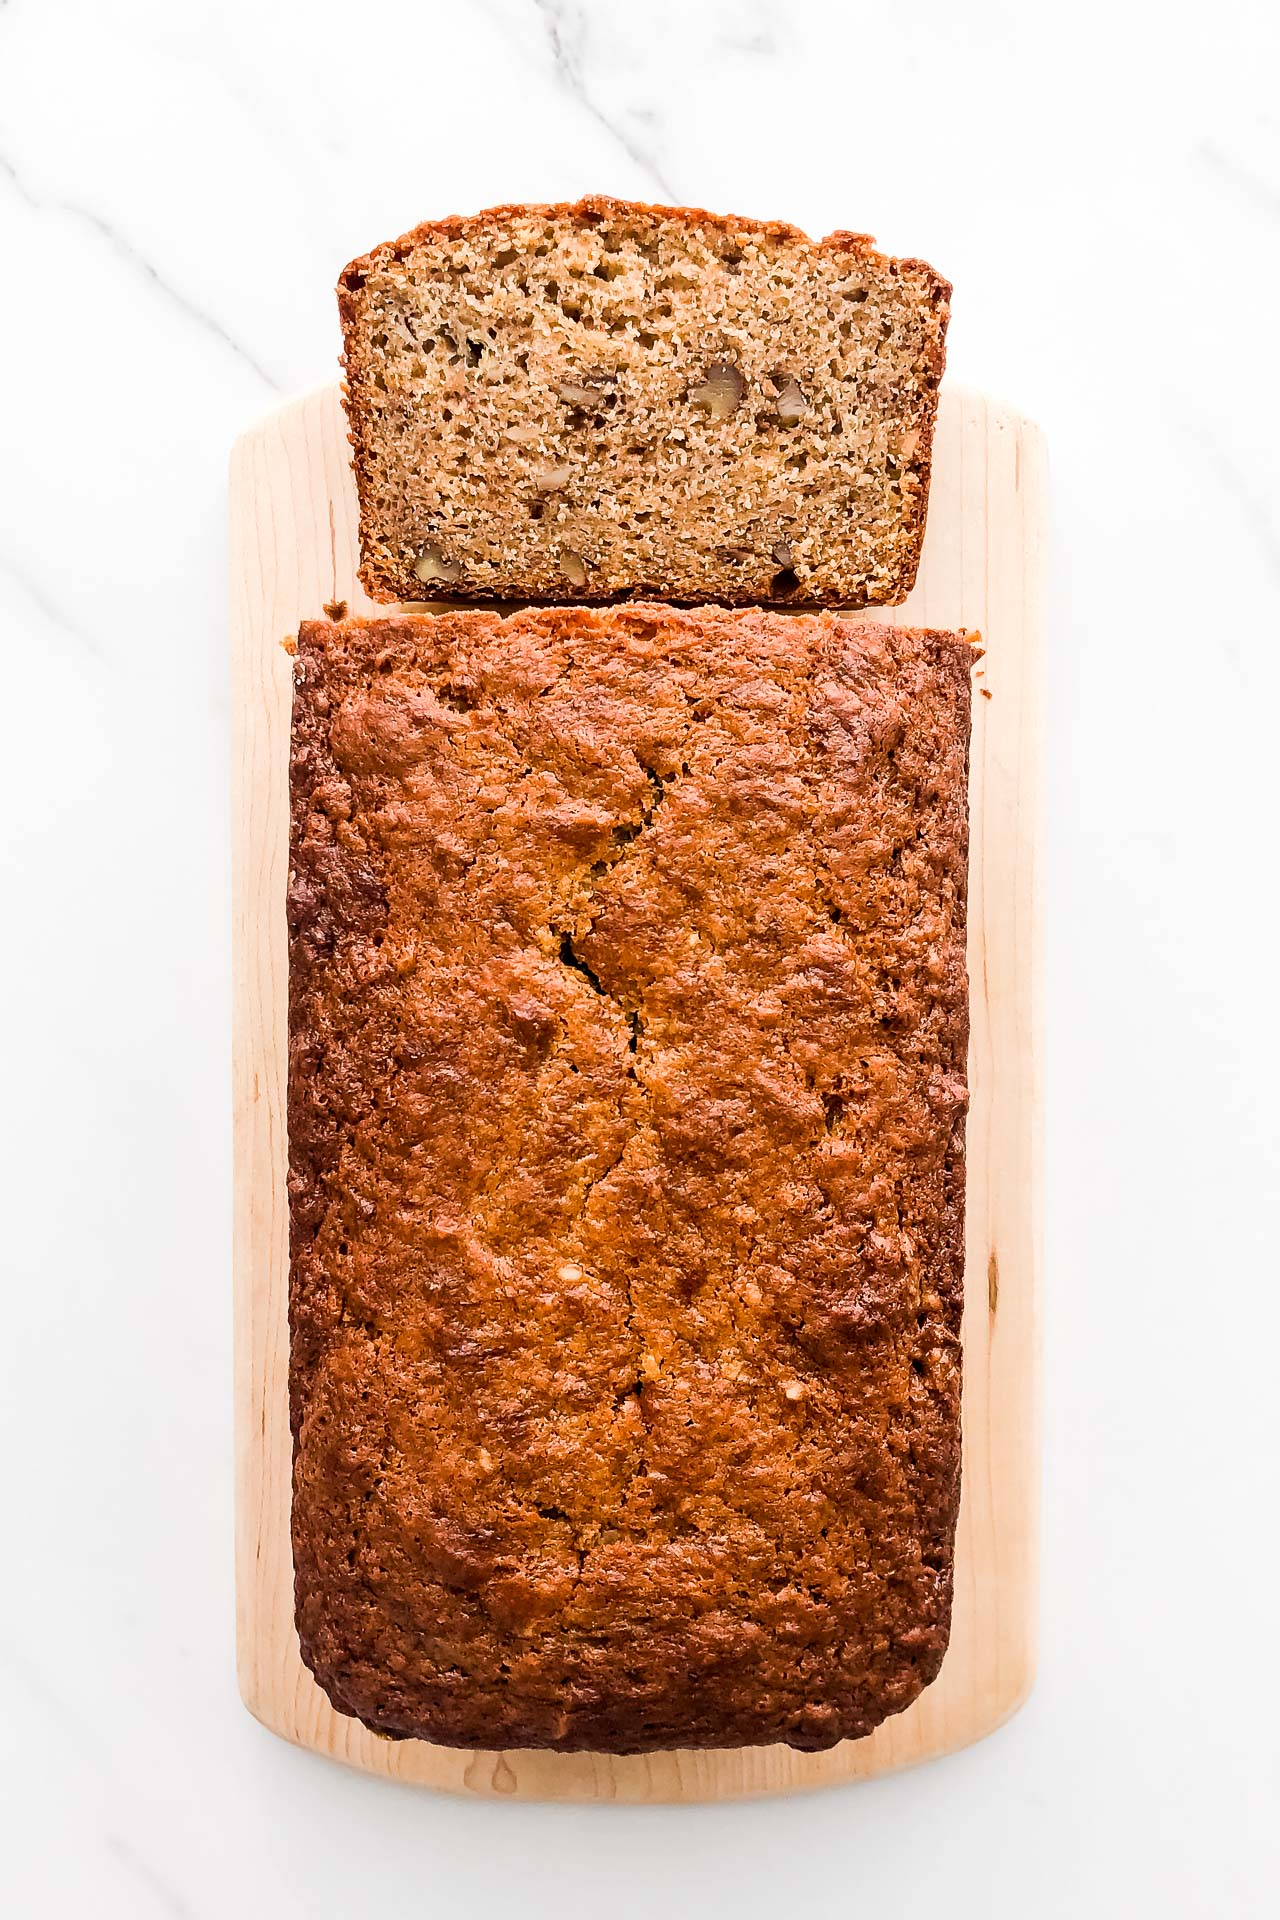 Cardamom banana bread made with sour cream and walnuts, sliced on a wood cutting board